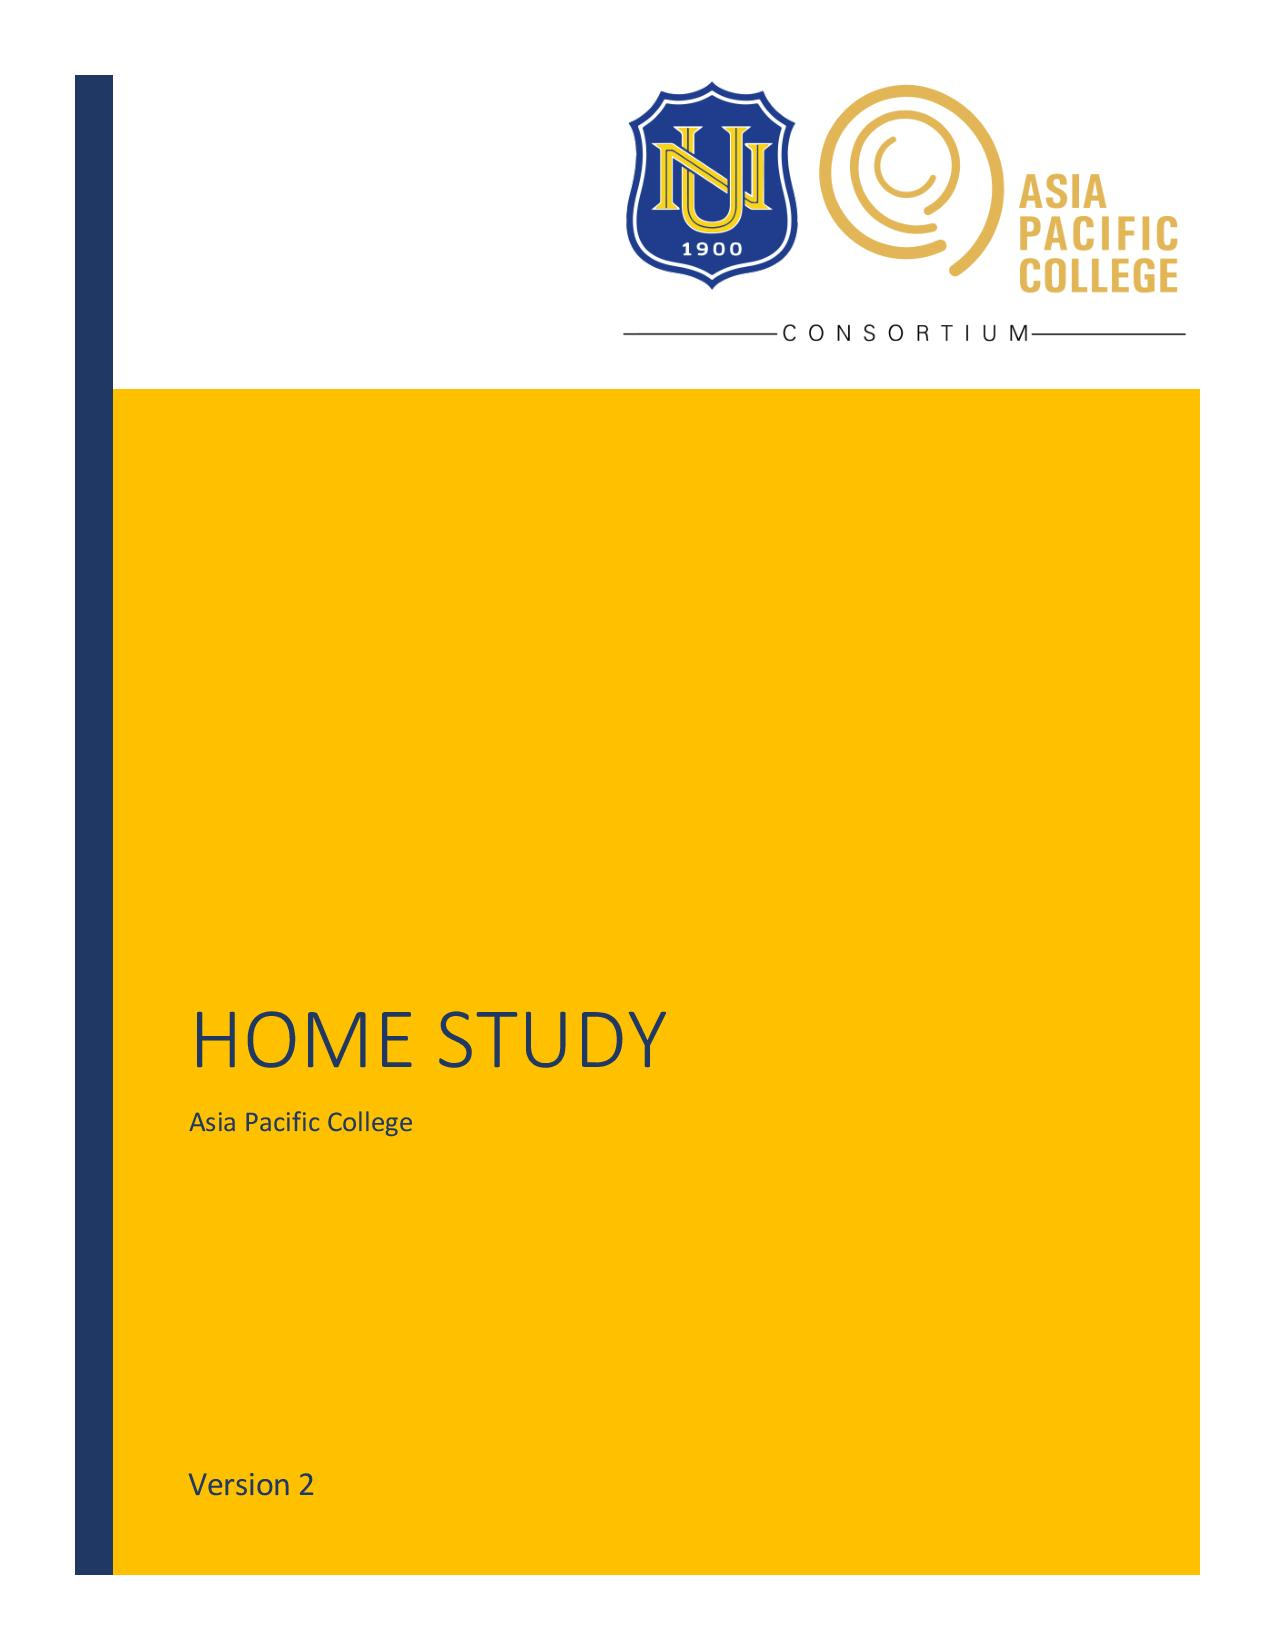 1. Home Study F_1 May 2020 v2-page-001